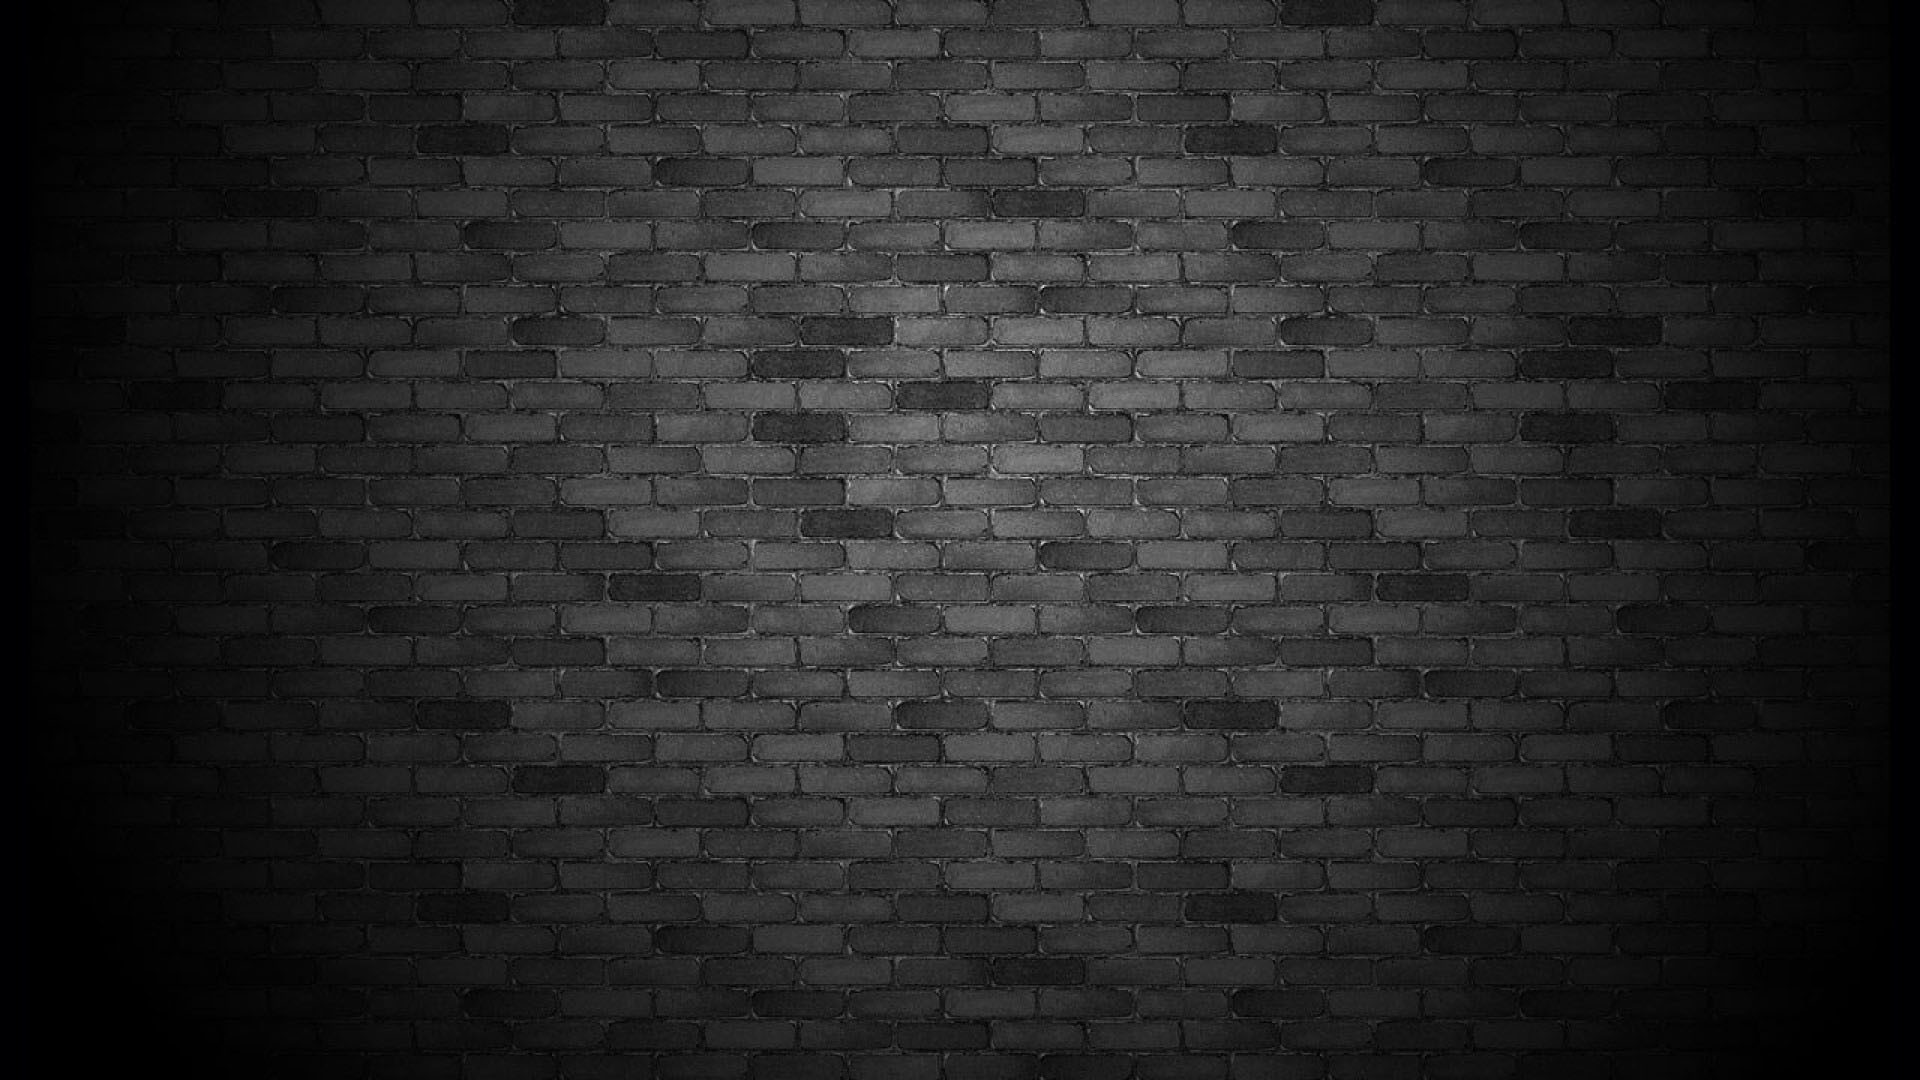 home design brick wall black and white wallpaper subway tile baby